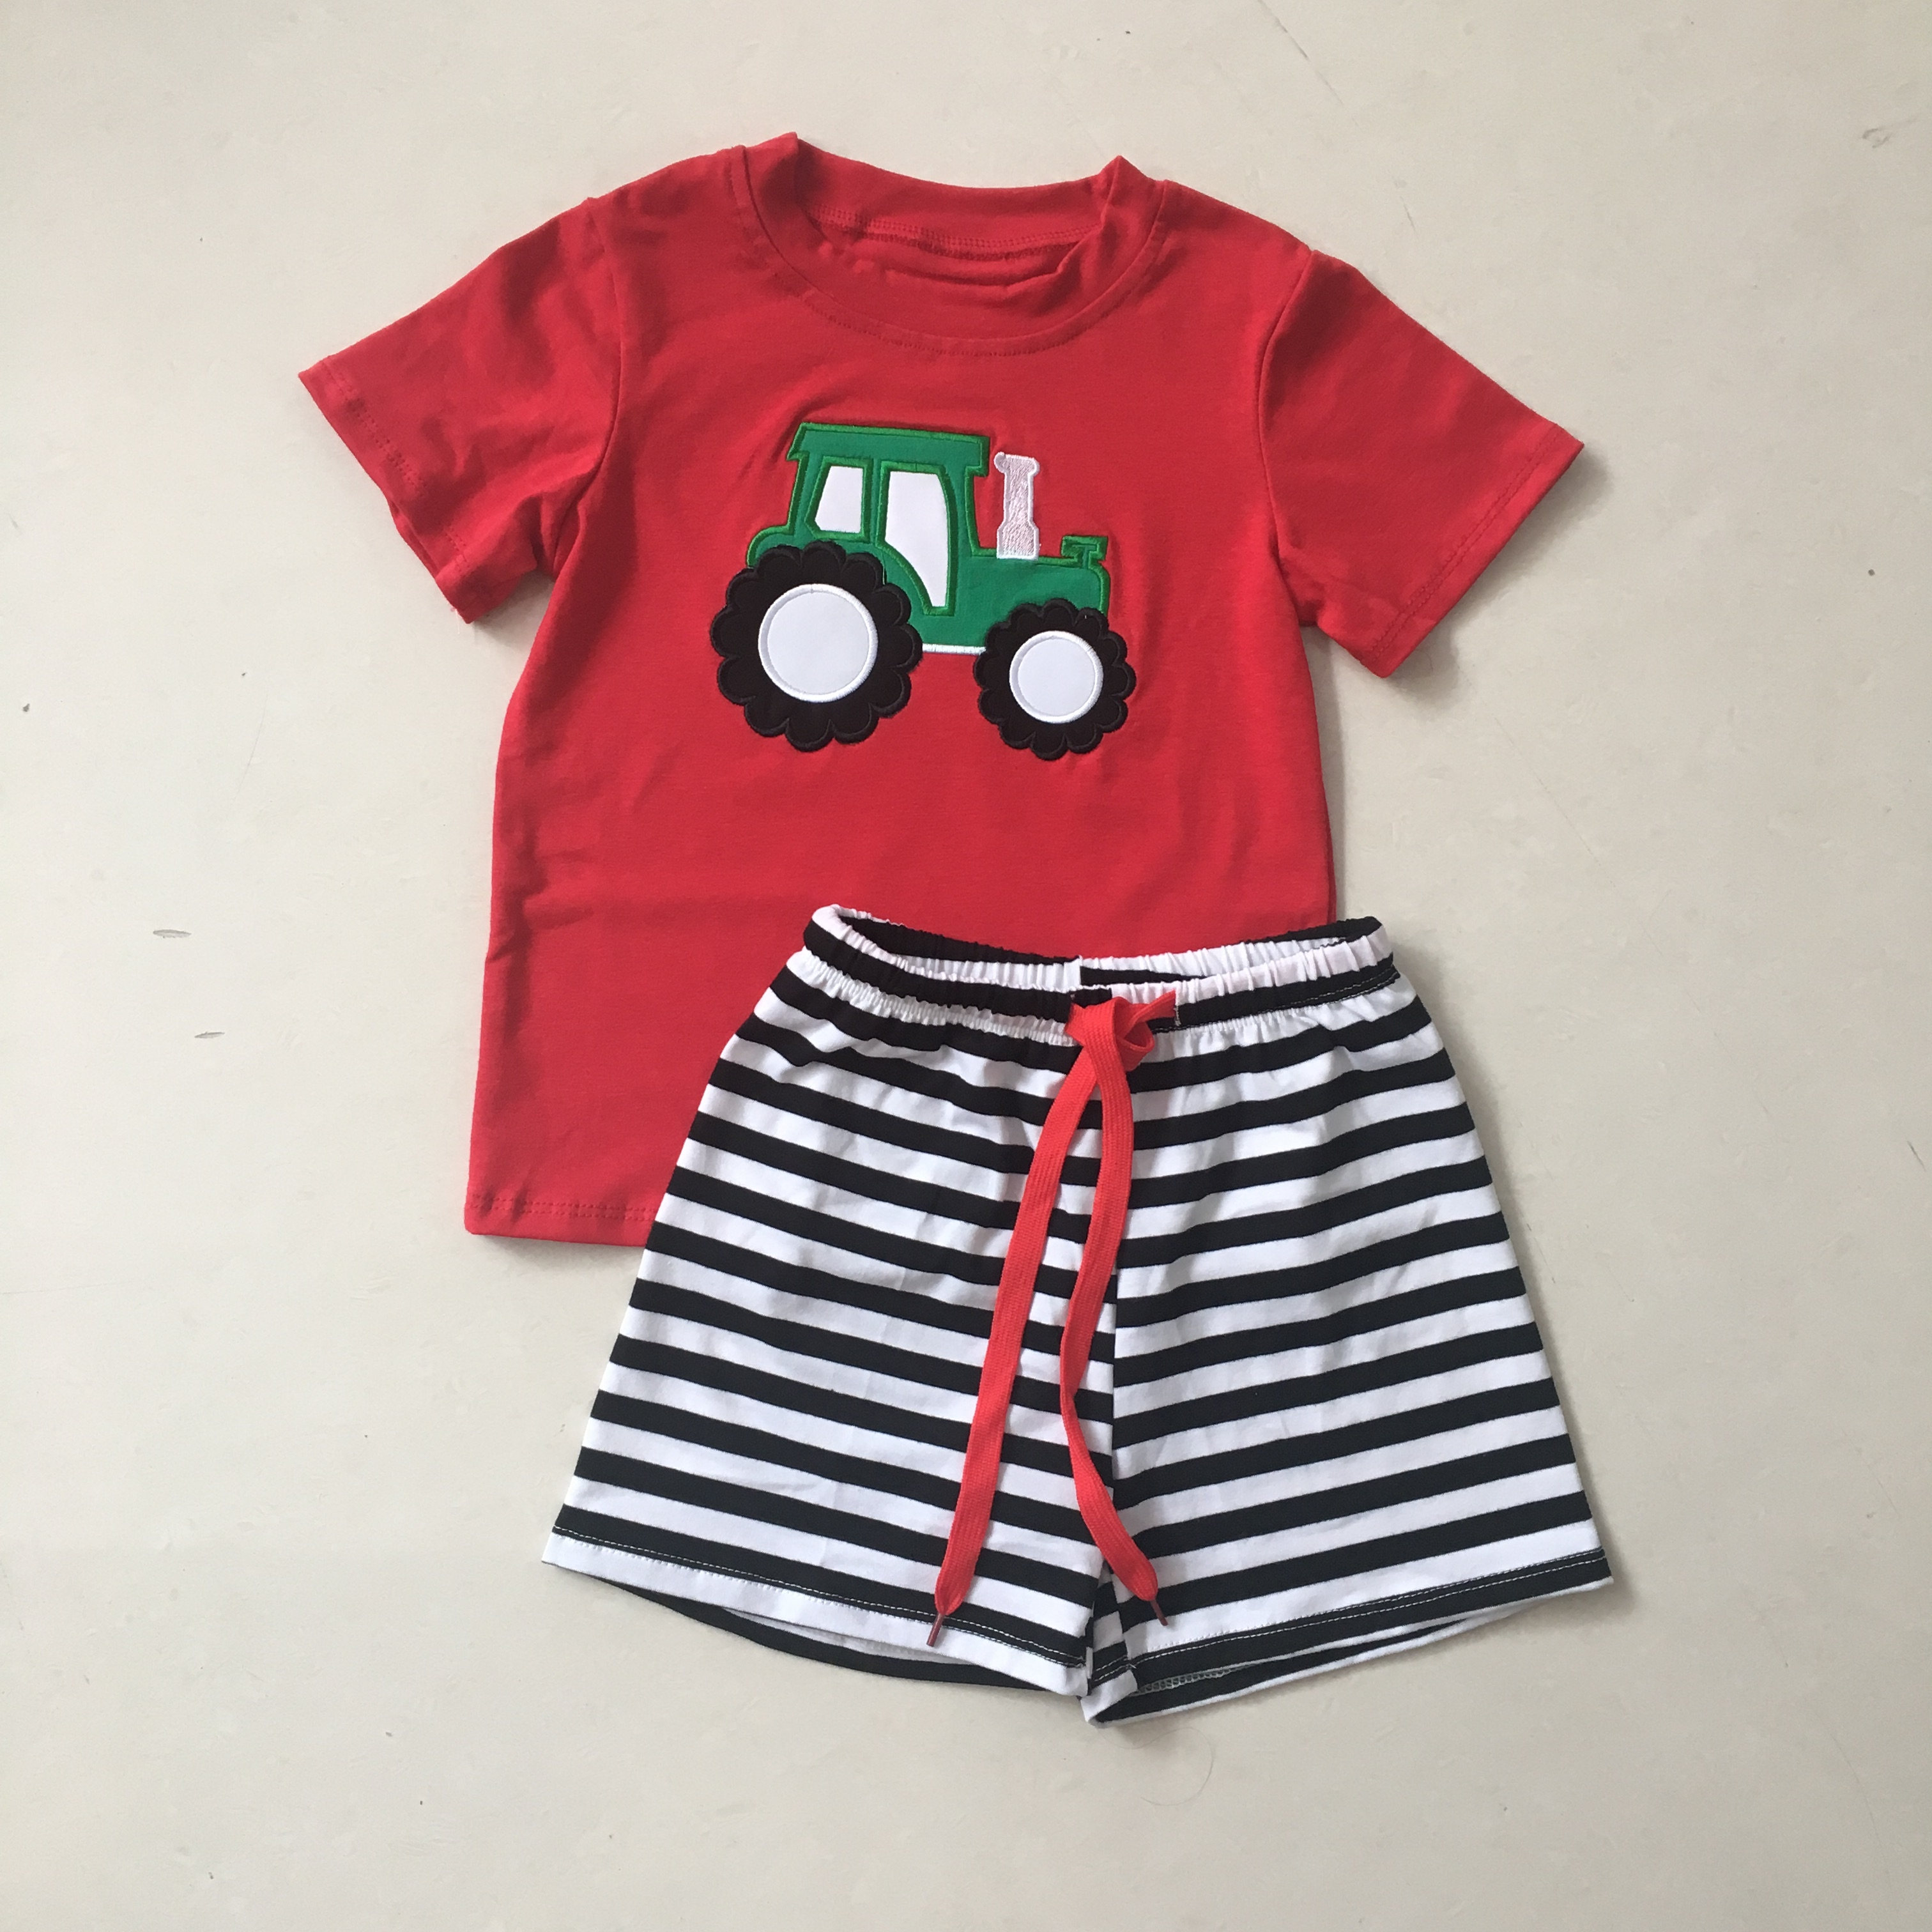 Puresun New Design Toddler Popular Boy Lovely Summer Clothing Sets Embroidery Tractor Pattern Clothing Set Boutique Kids Outfits